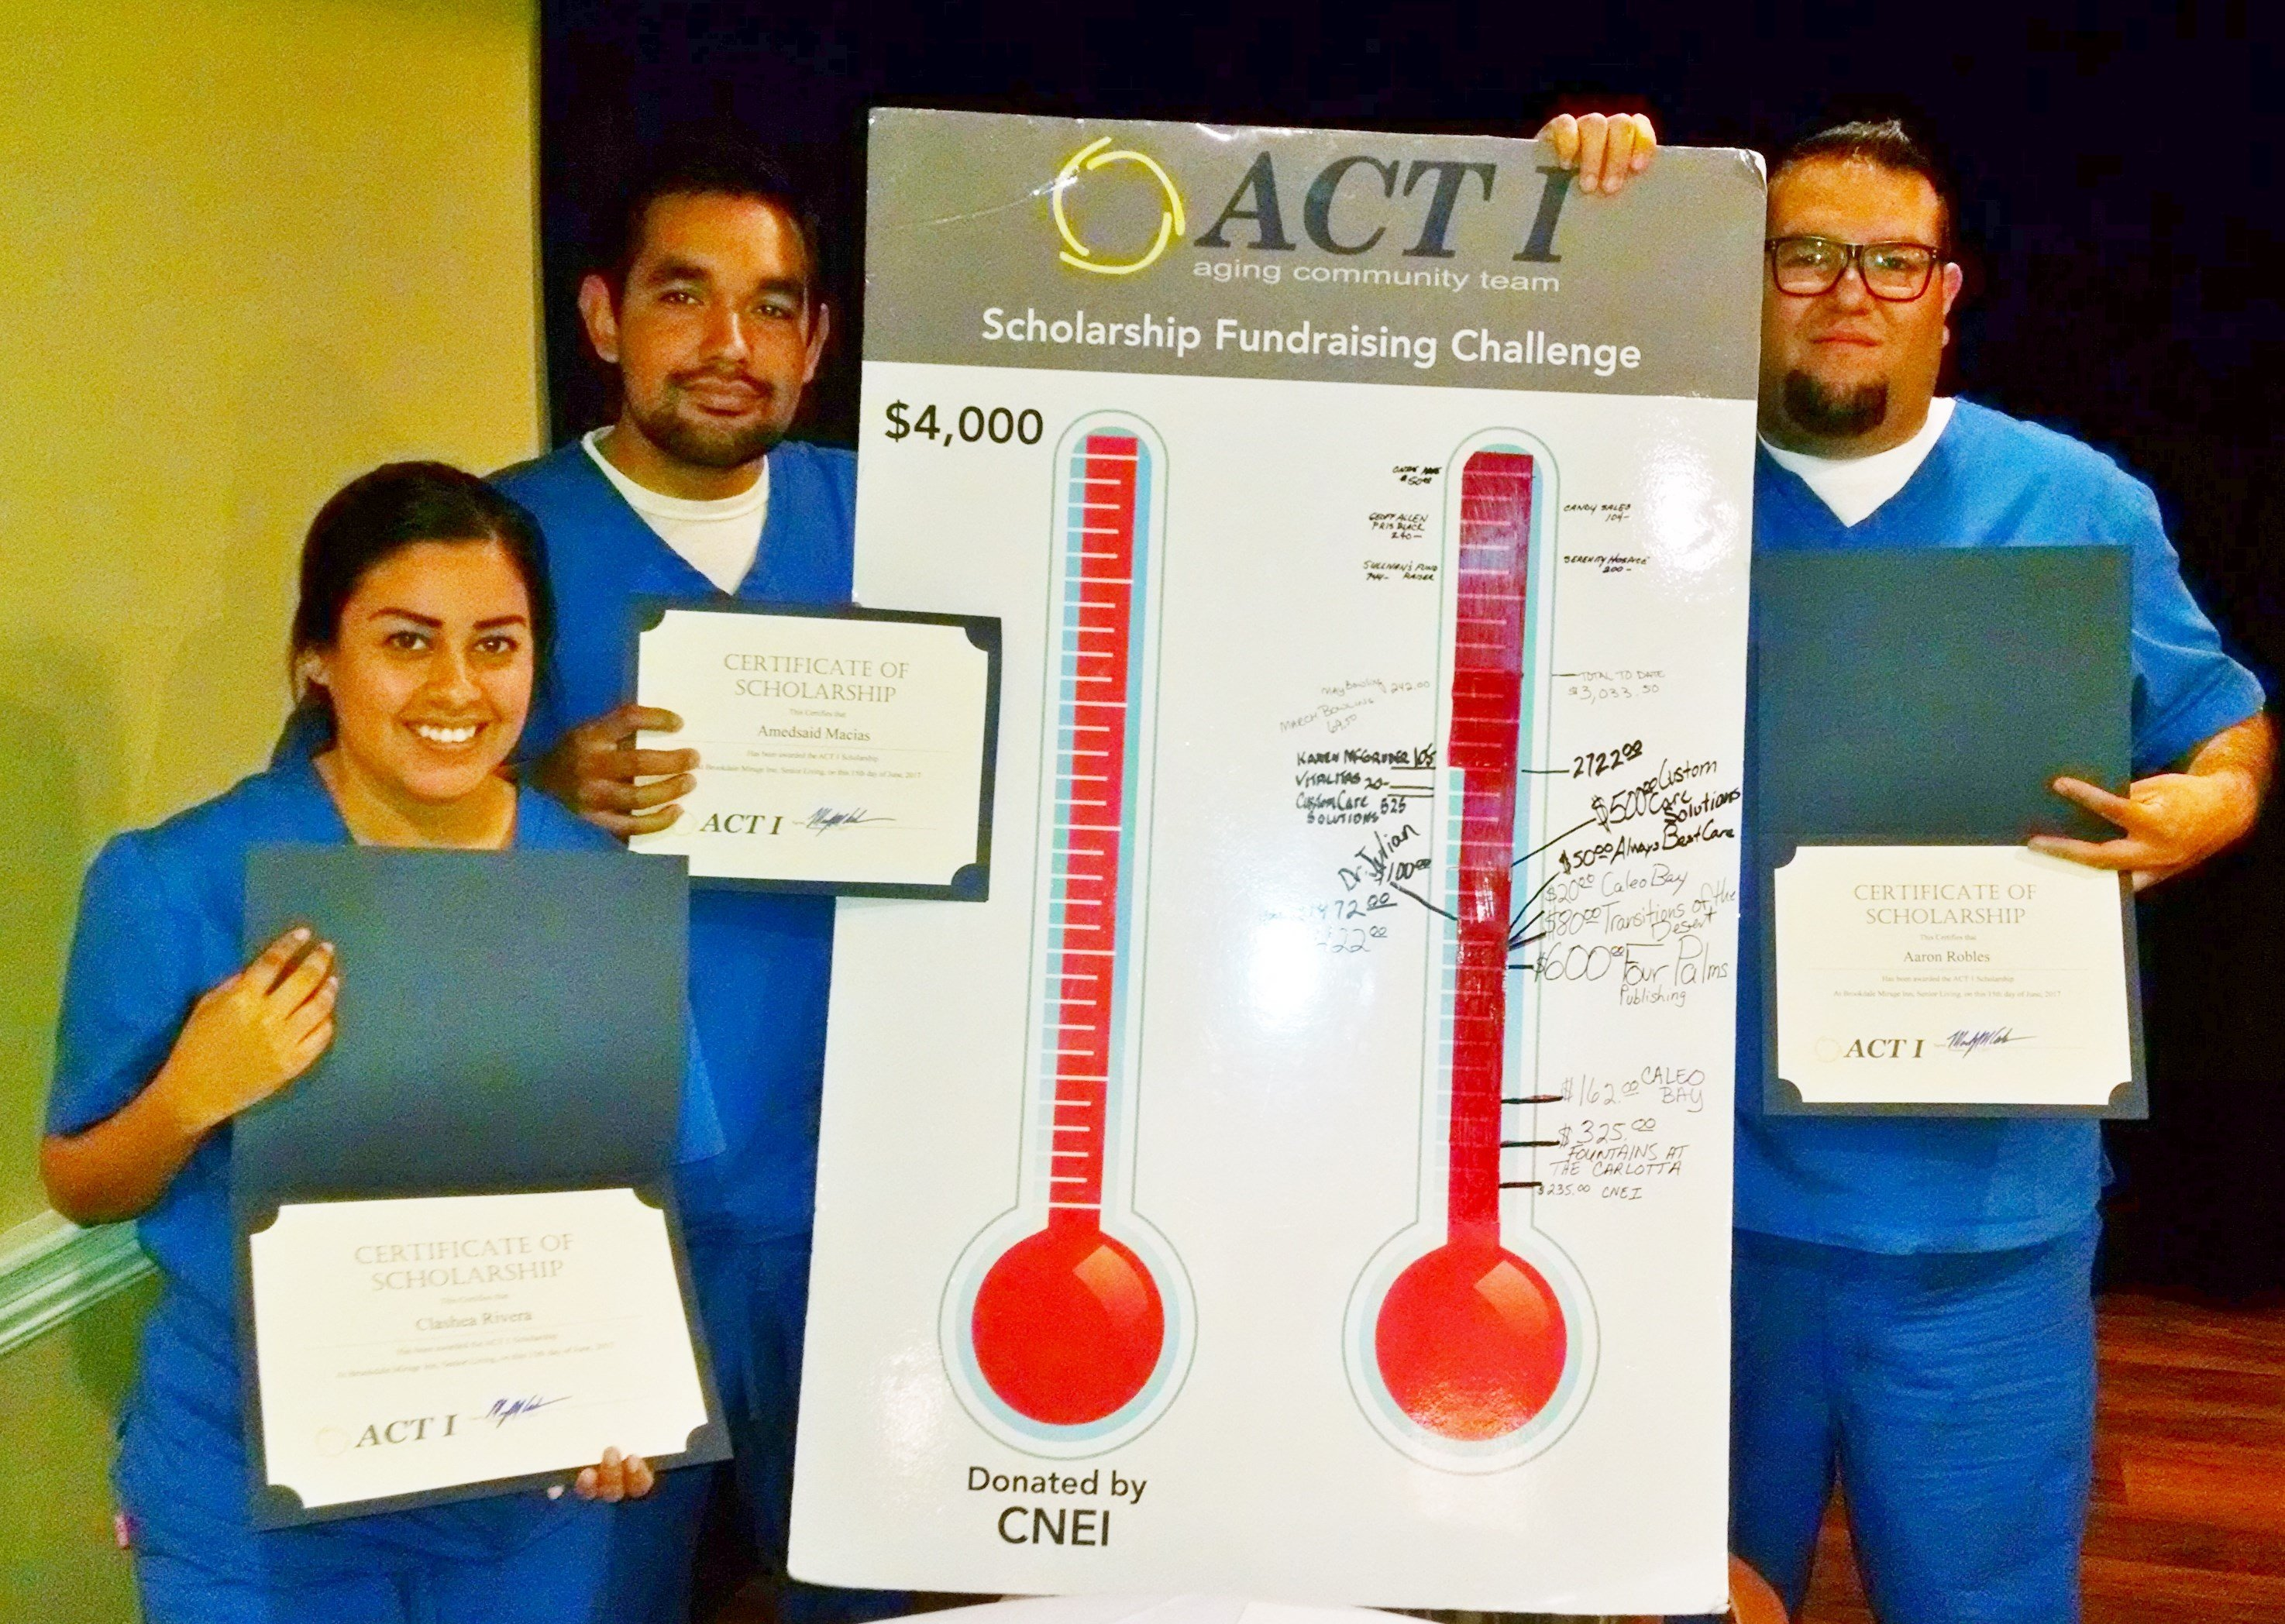 Health care students at California Nursing Education Institute: Clashea Rivera, Amedsaid Macias, and Aaron Robles receive scholarship awards at the recent ACT 1 luncheon.